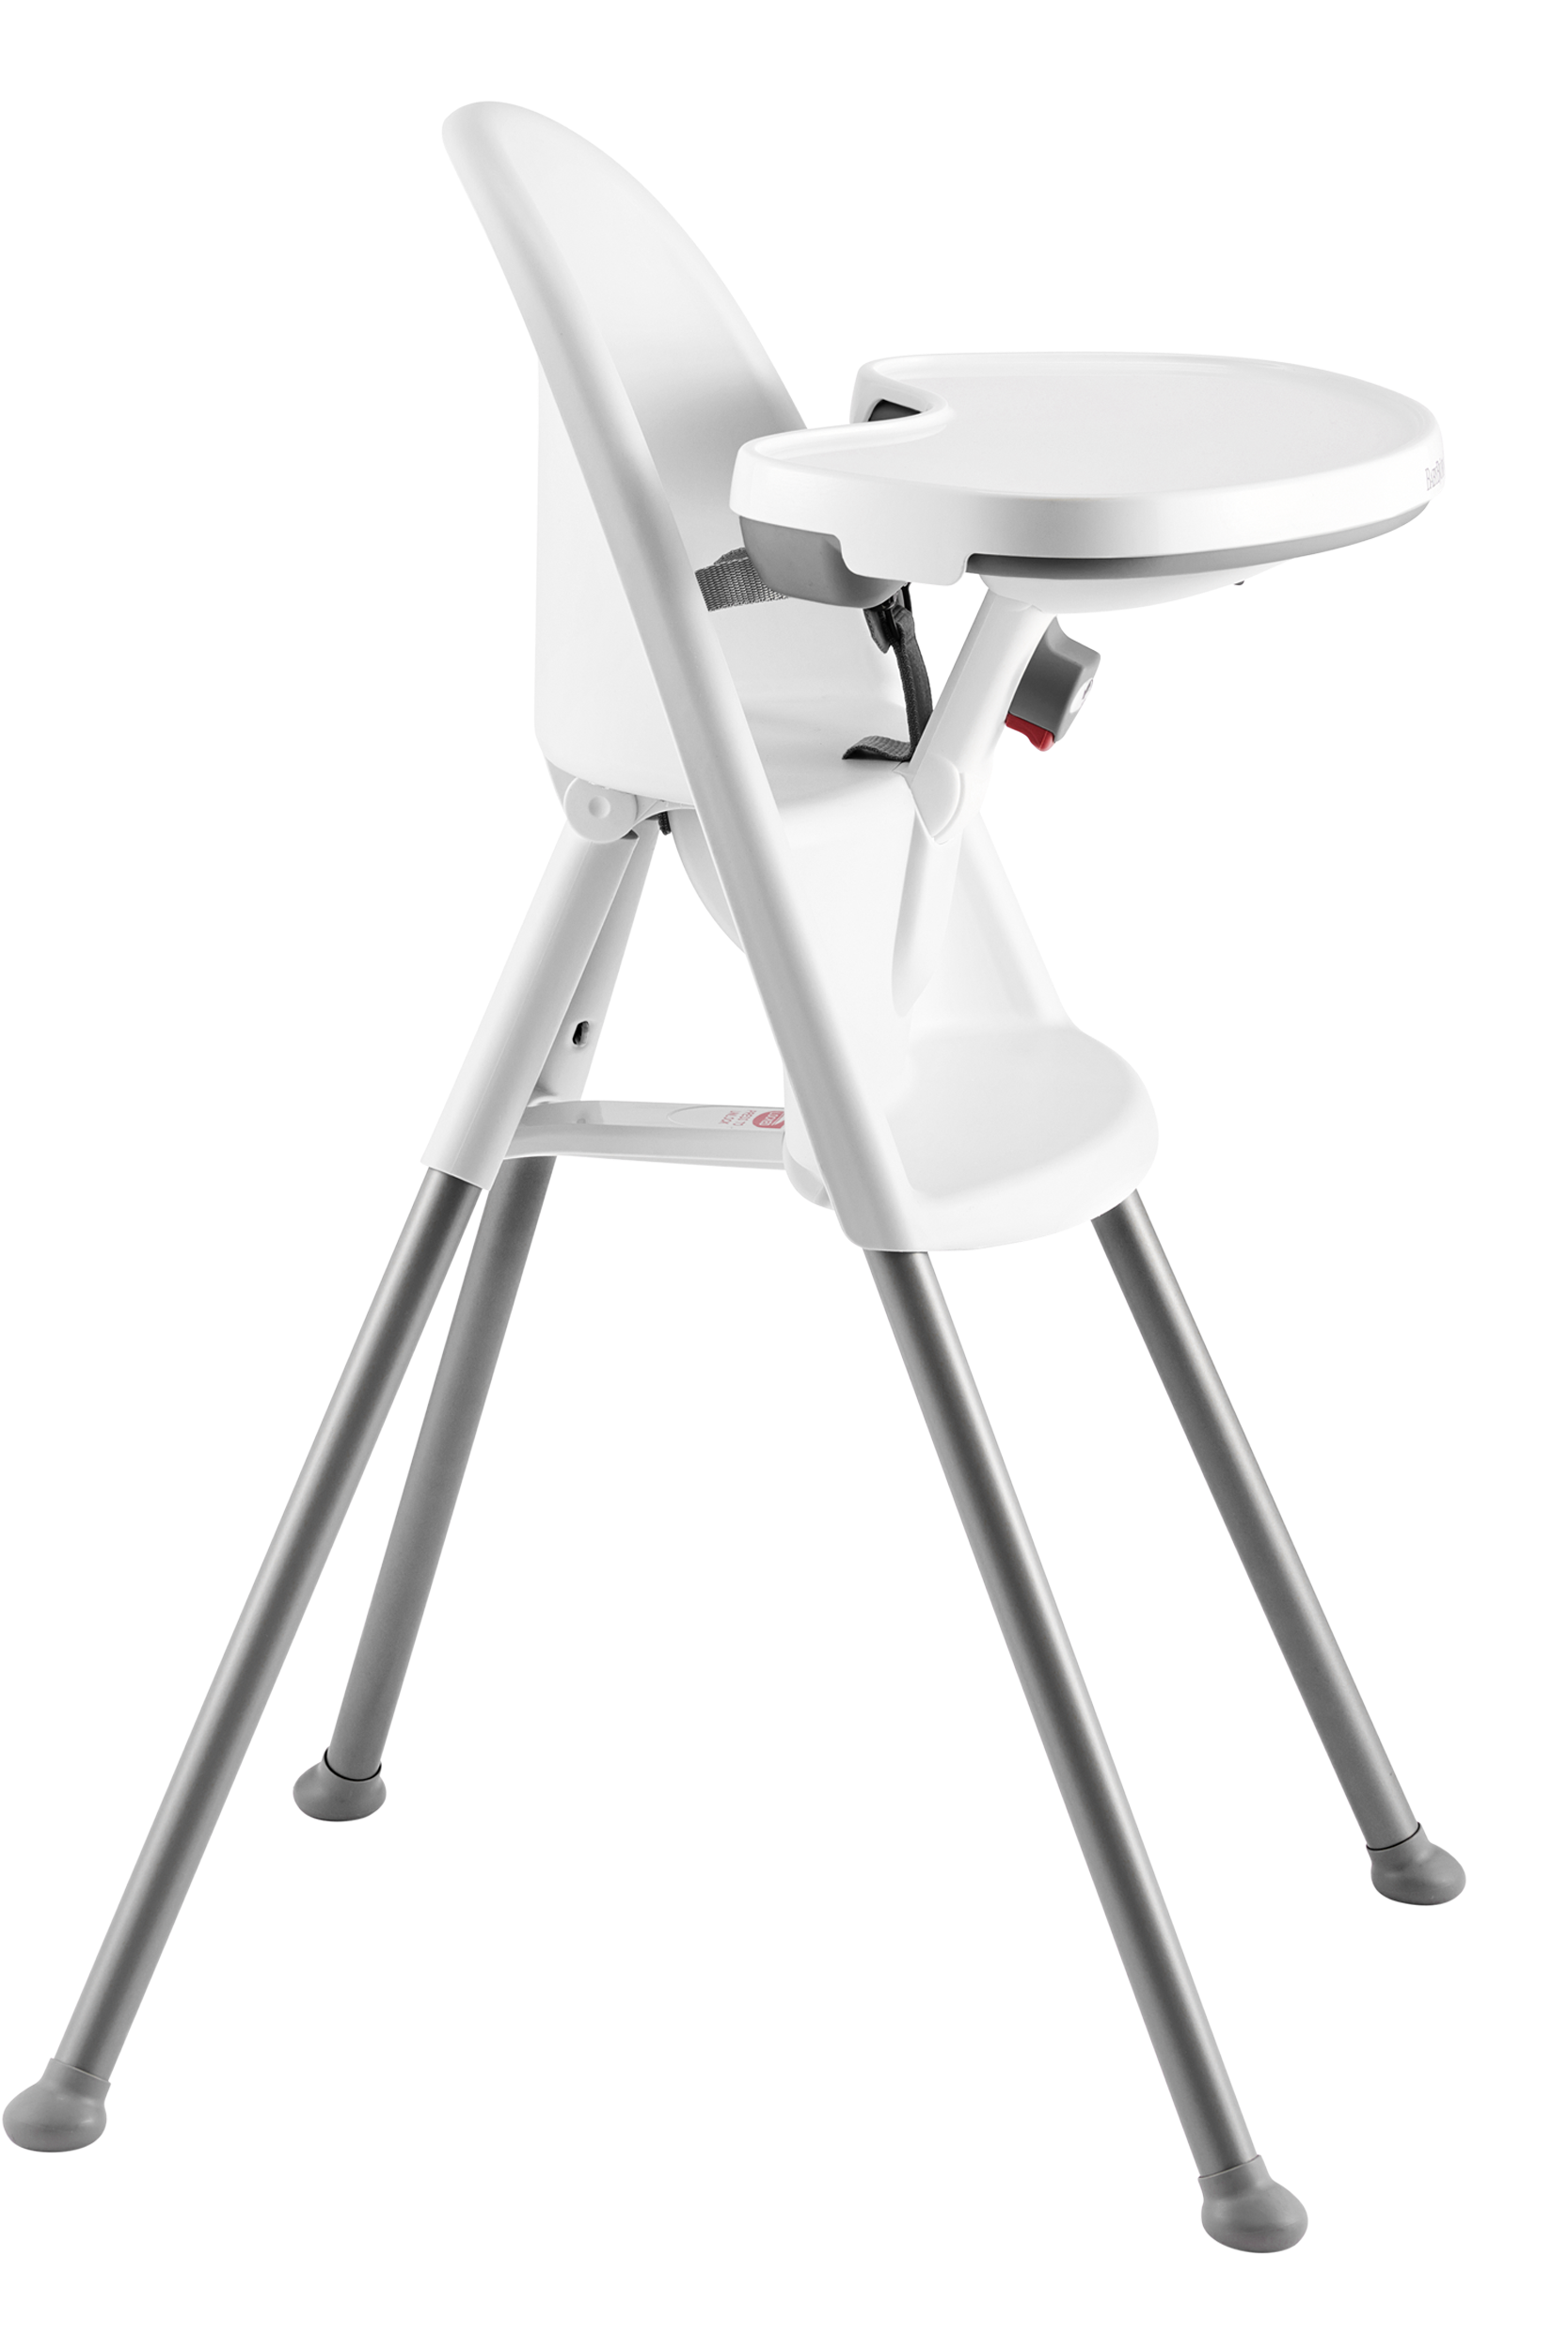 2018 Brand New Baby High Chairs Fold Able Highchair Feeding Model Free Bibs Available In Various Designs And Specifications For Your Selection Feeding